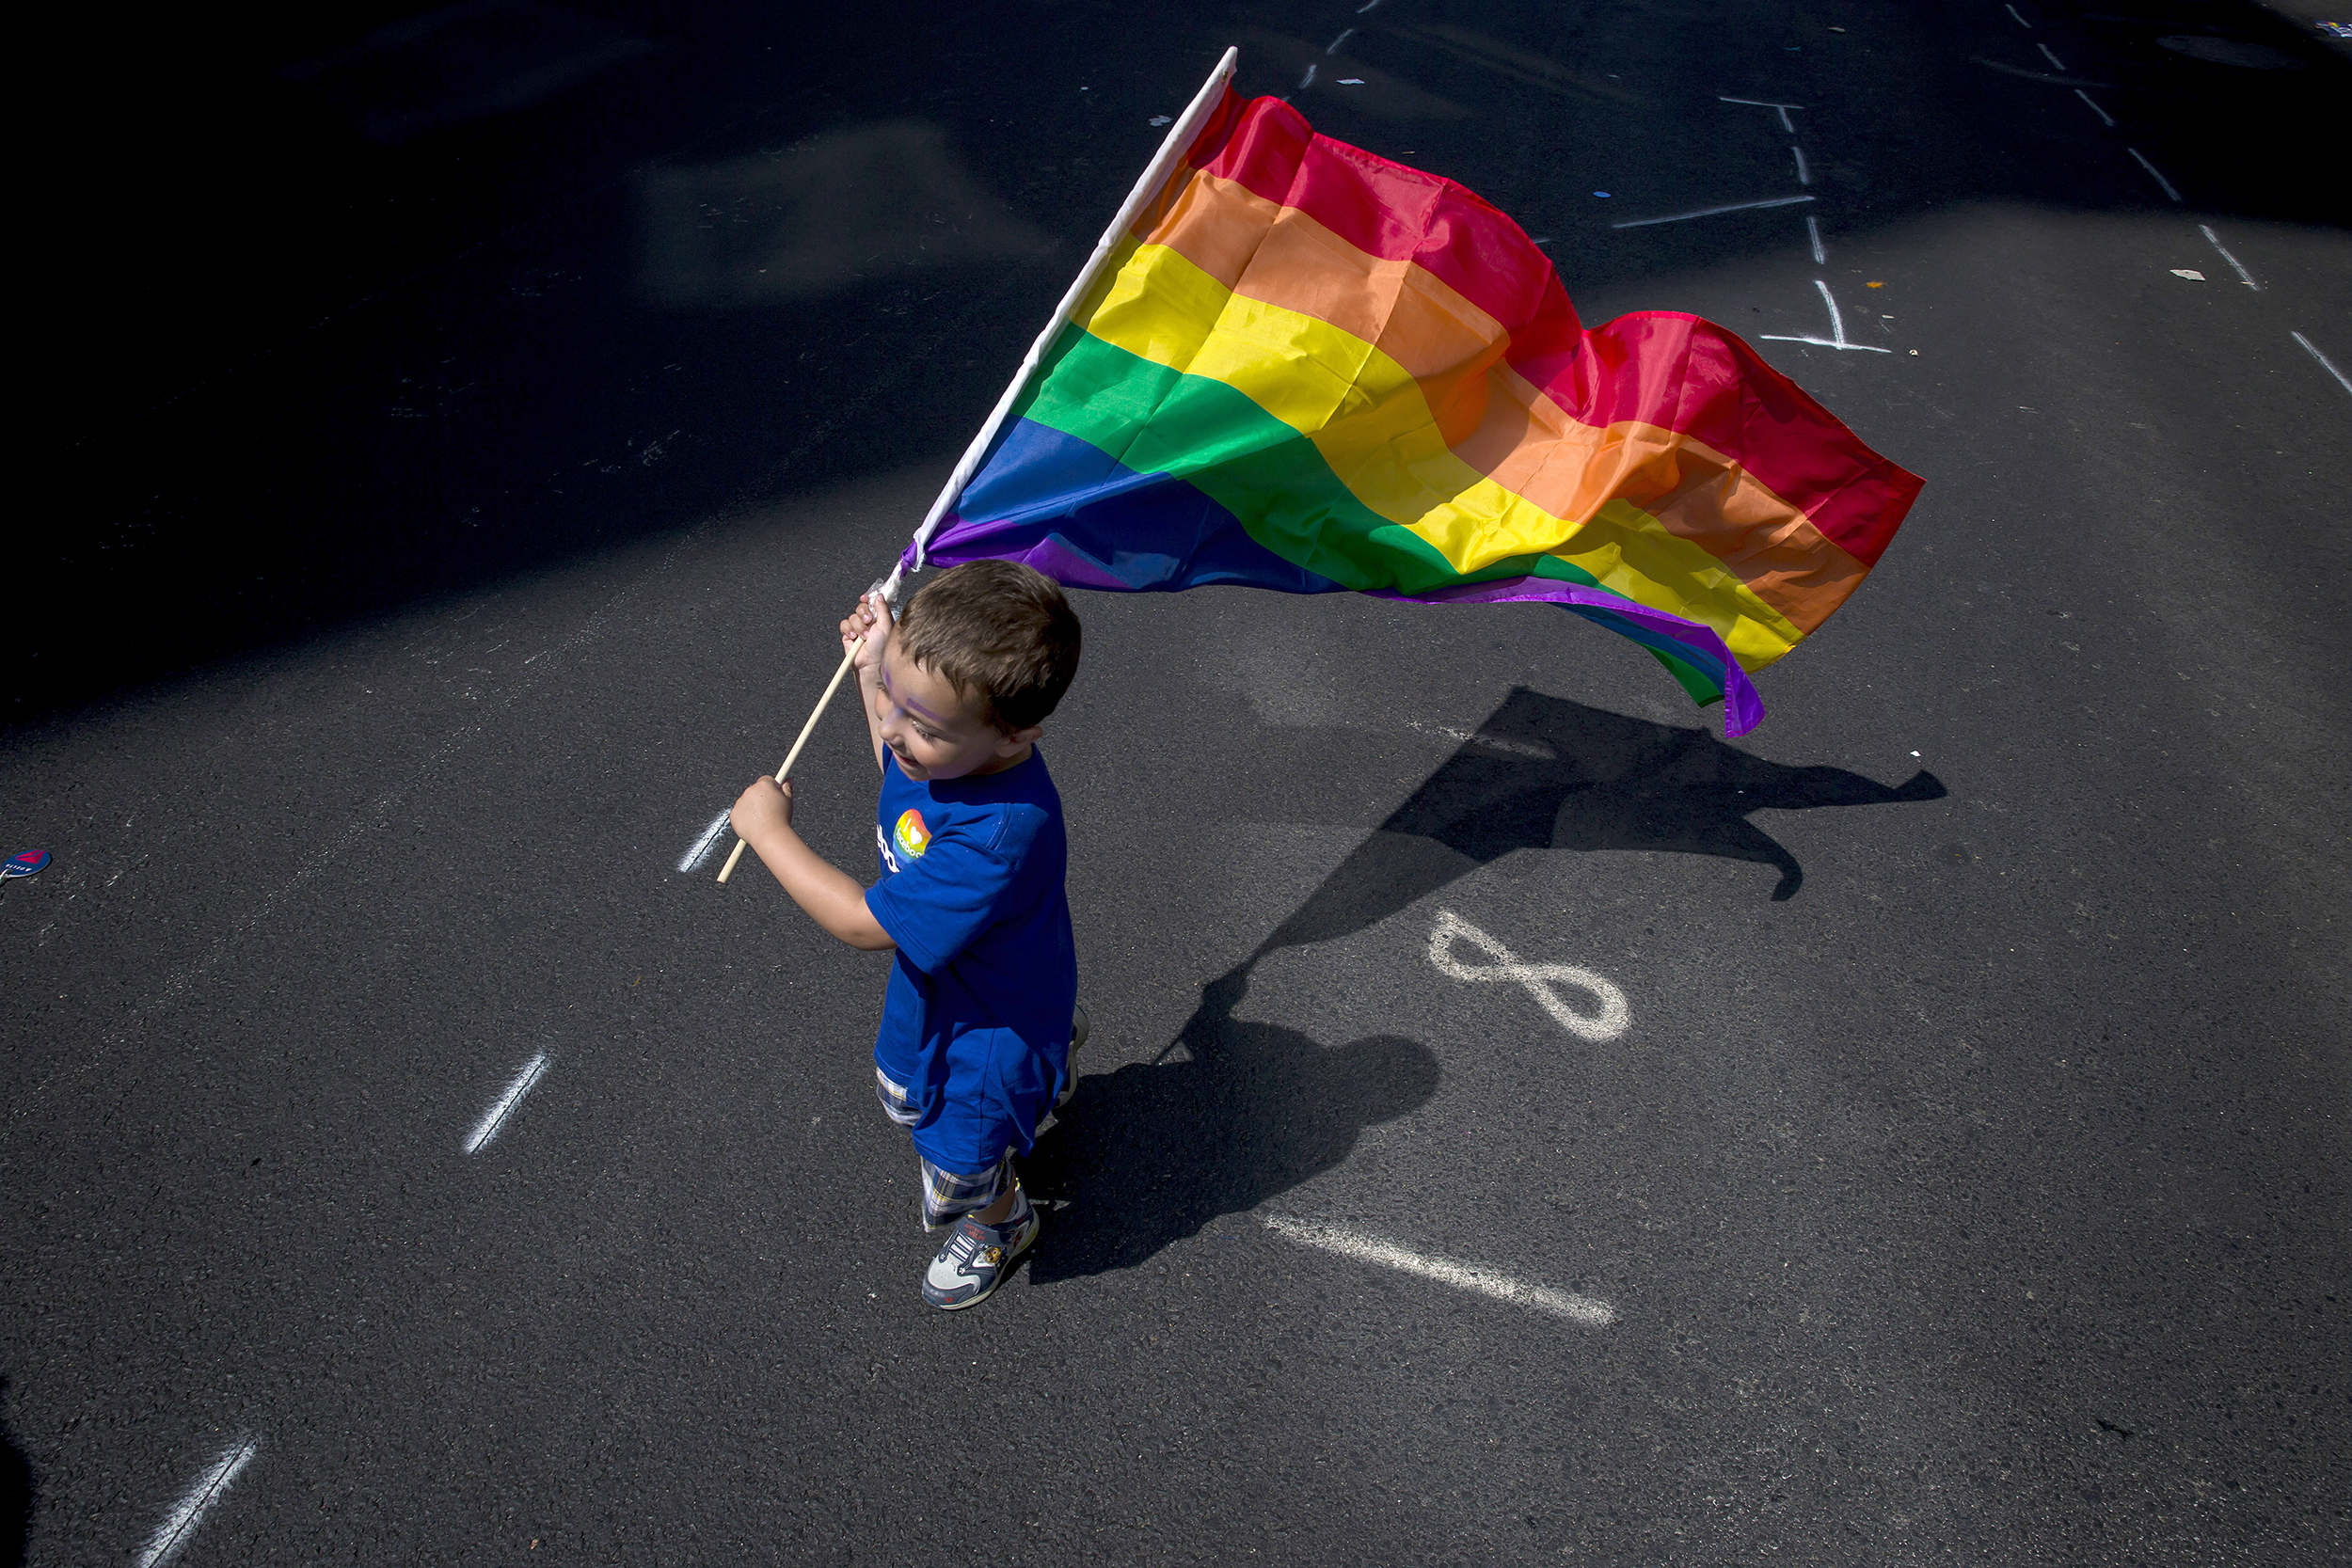 Many parents struggle to adjust after learning child is gay, study finds